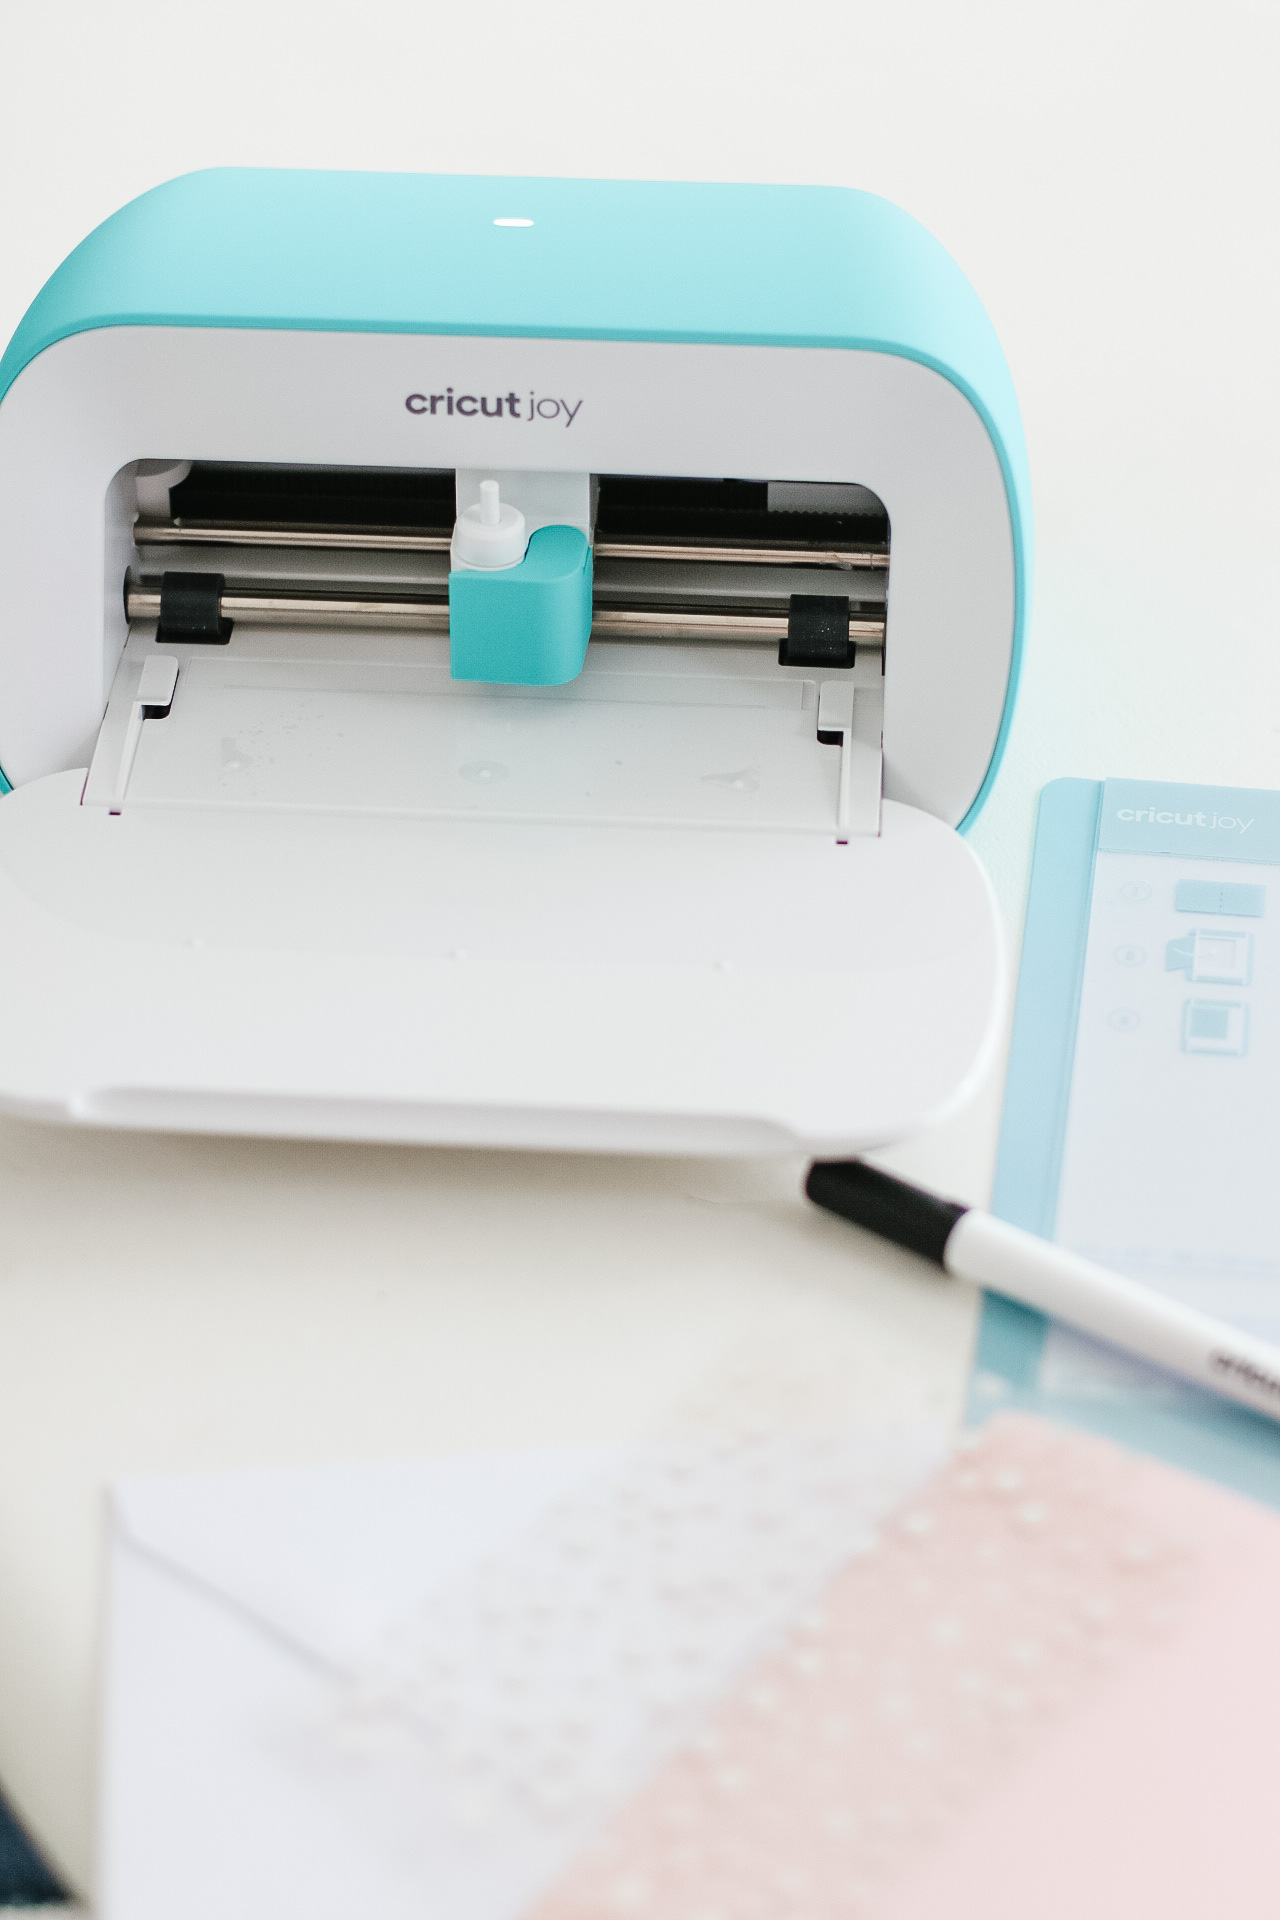 Cricut Joy is the perfect companion to quickly and easily personalize anything with one cut and one color, in 15 minutes or less. It is fun, functional, and simple to use.